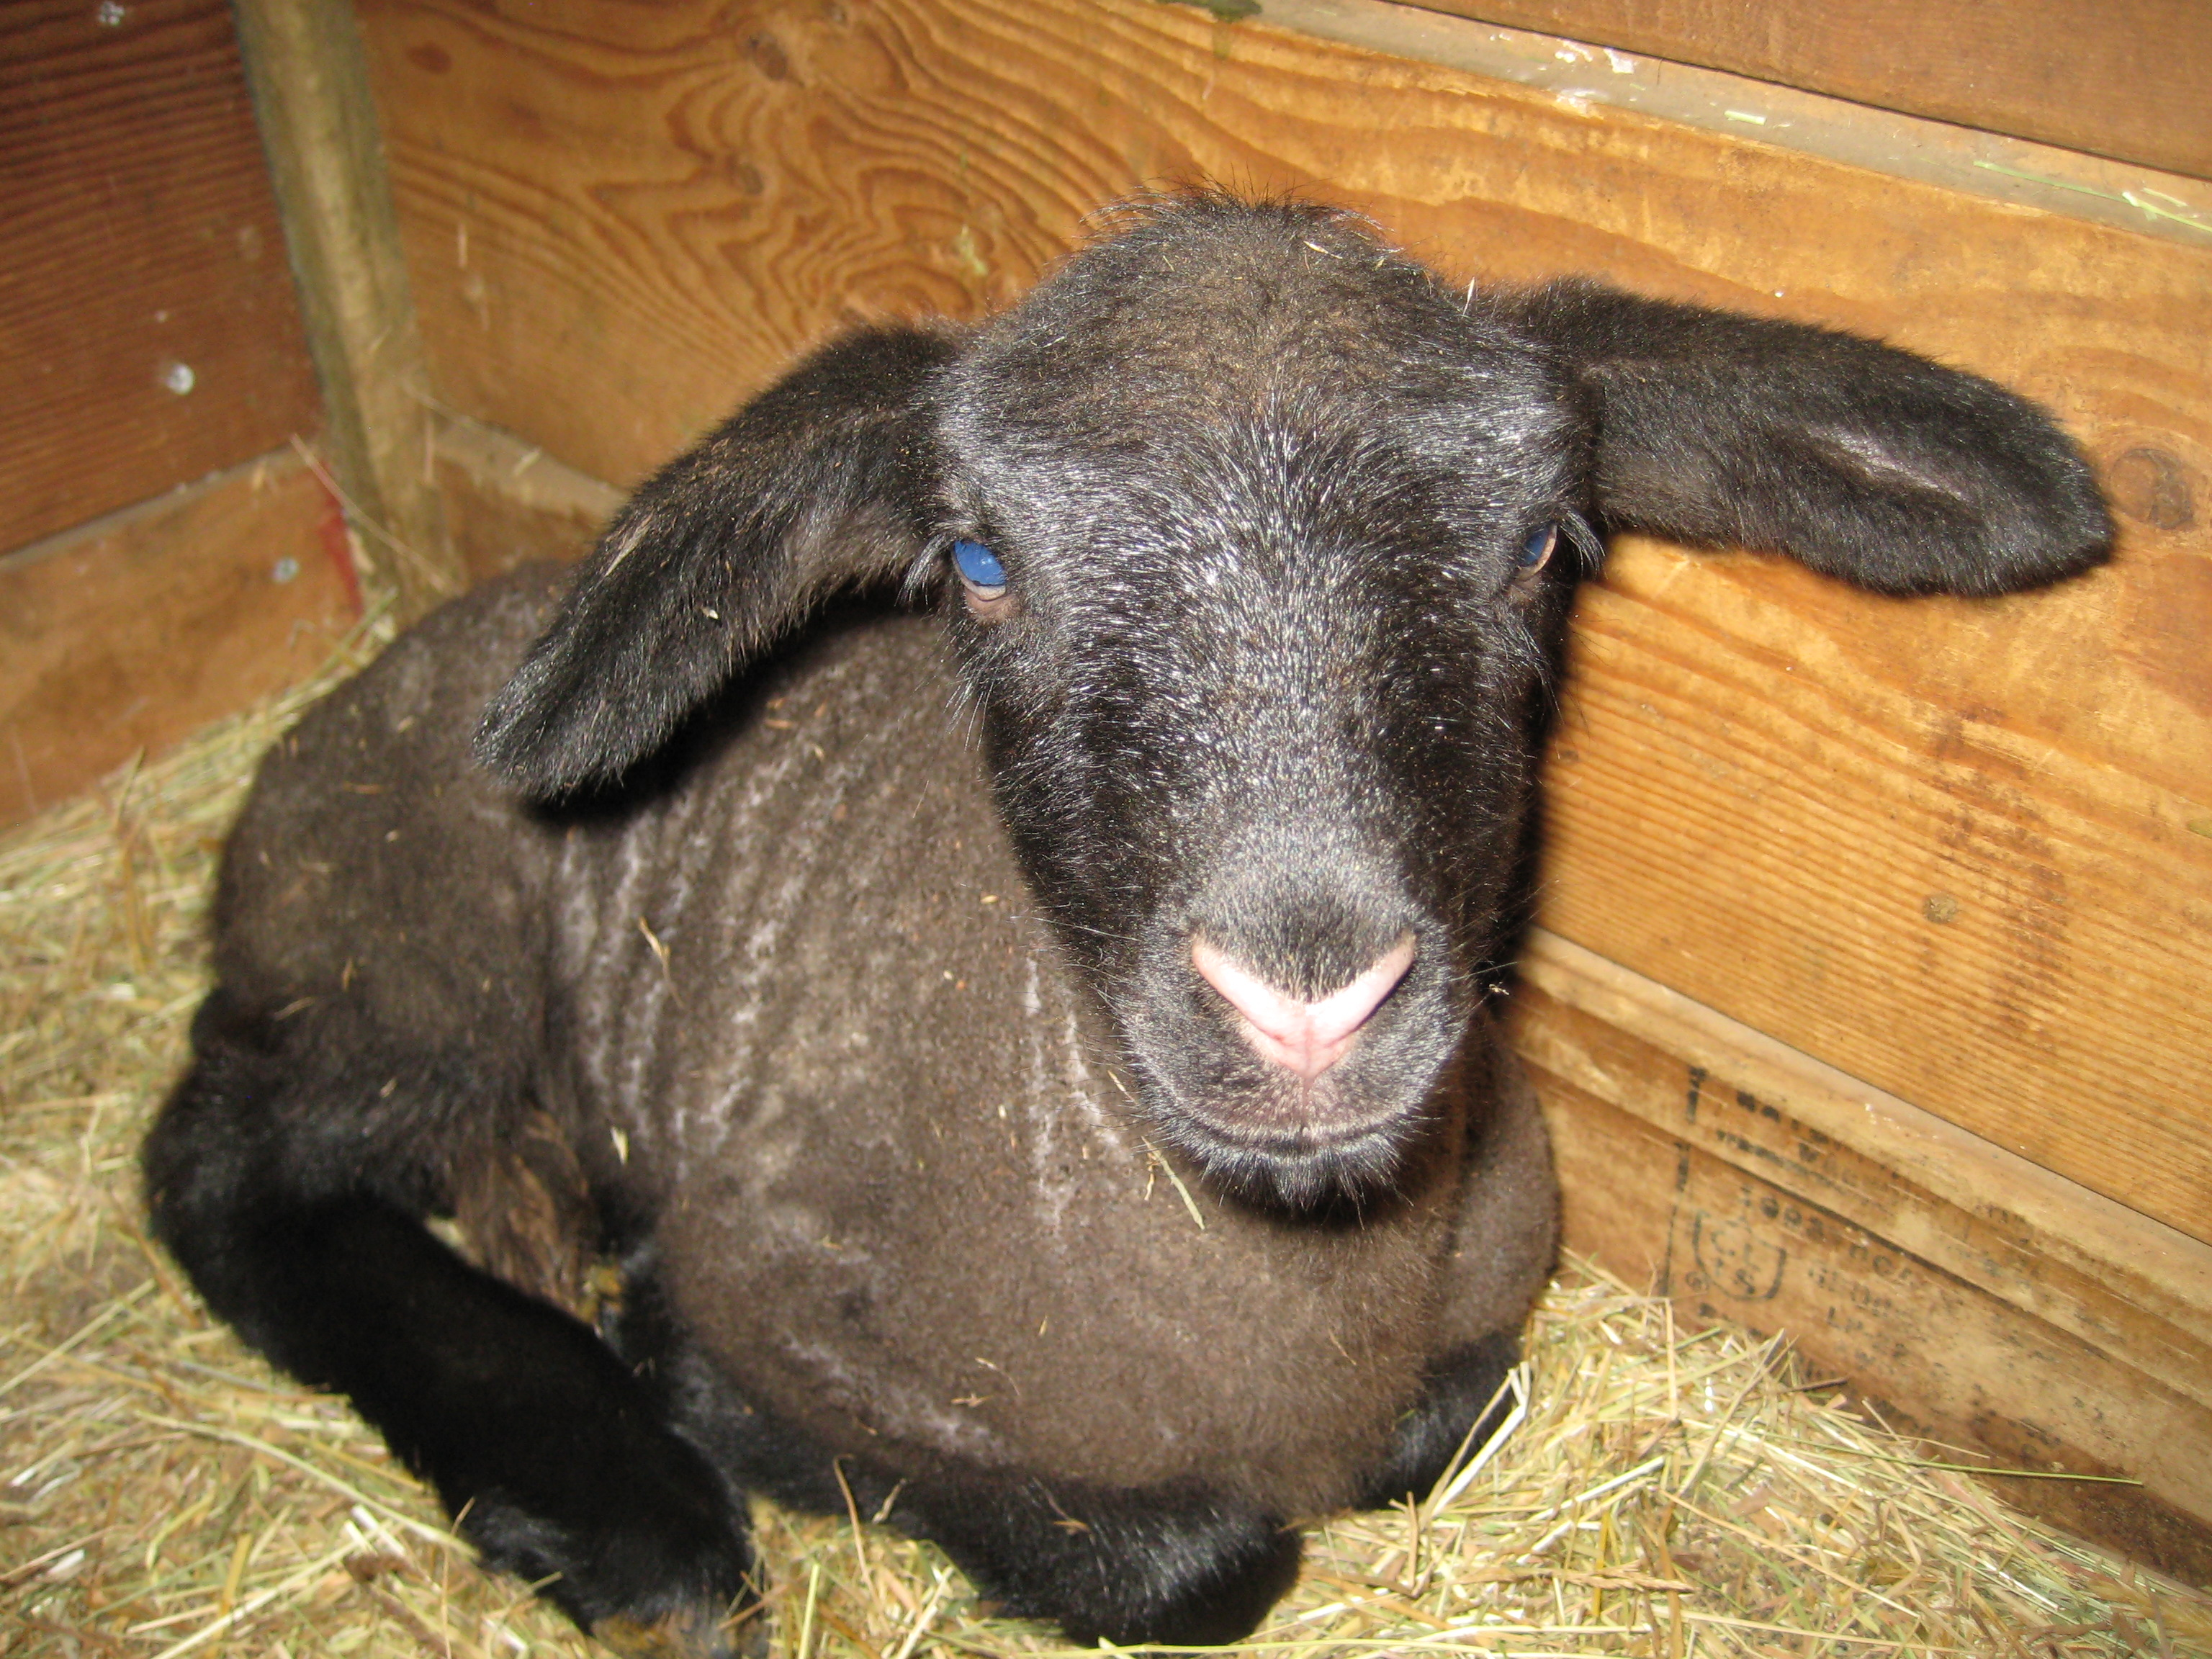 Suffolk Sheep and Lambs for Sale | Lester & Lester